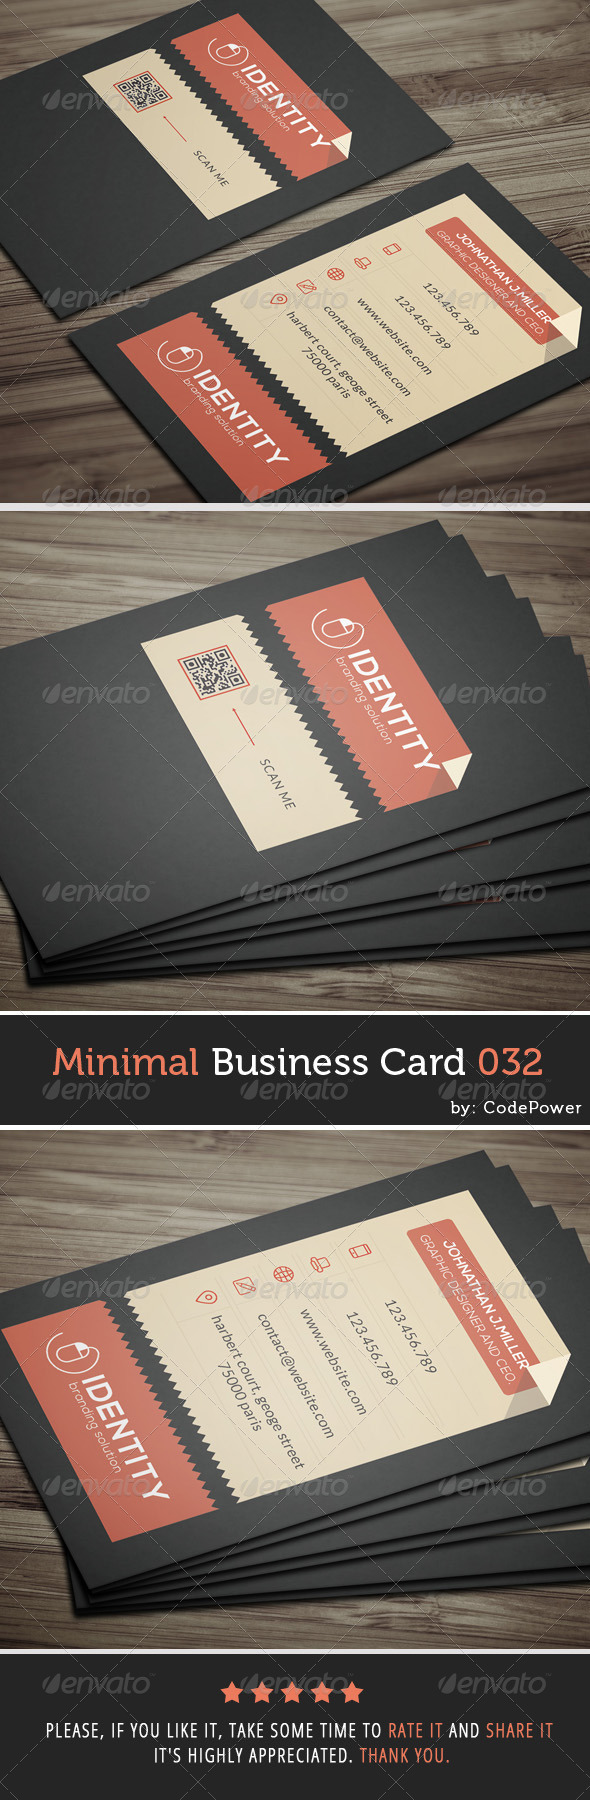 GraphicRiver Minimal Business Card 032 7980142